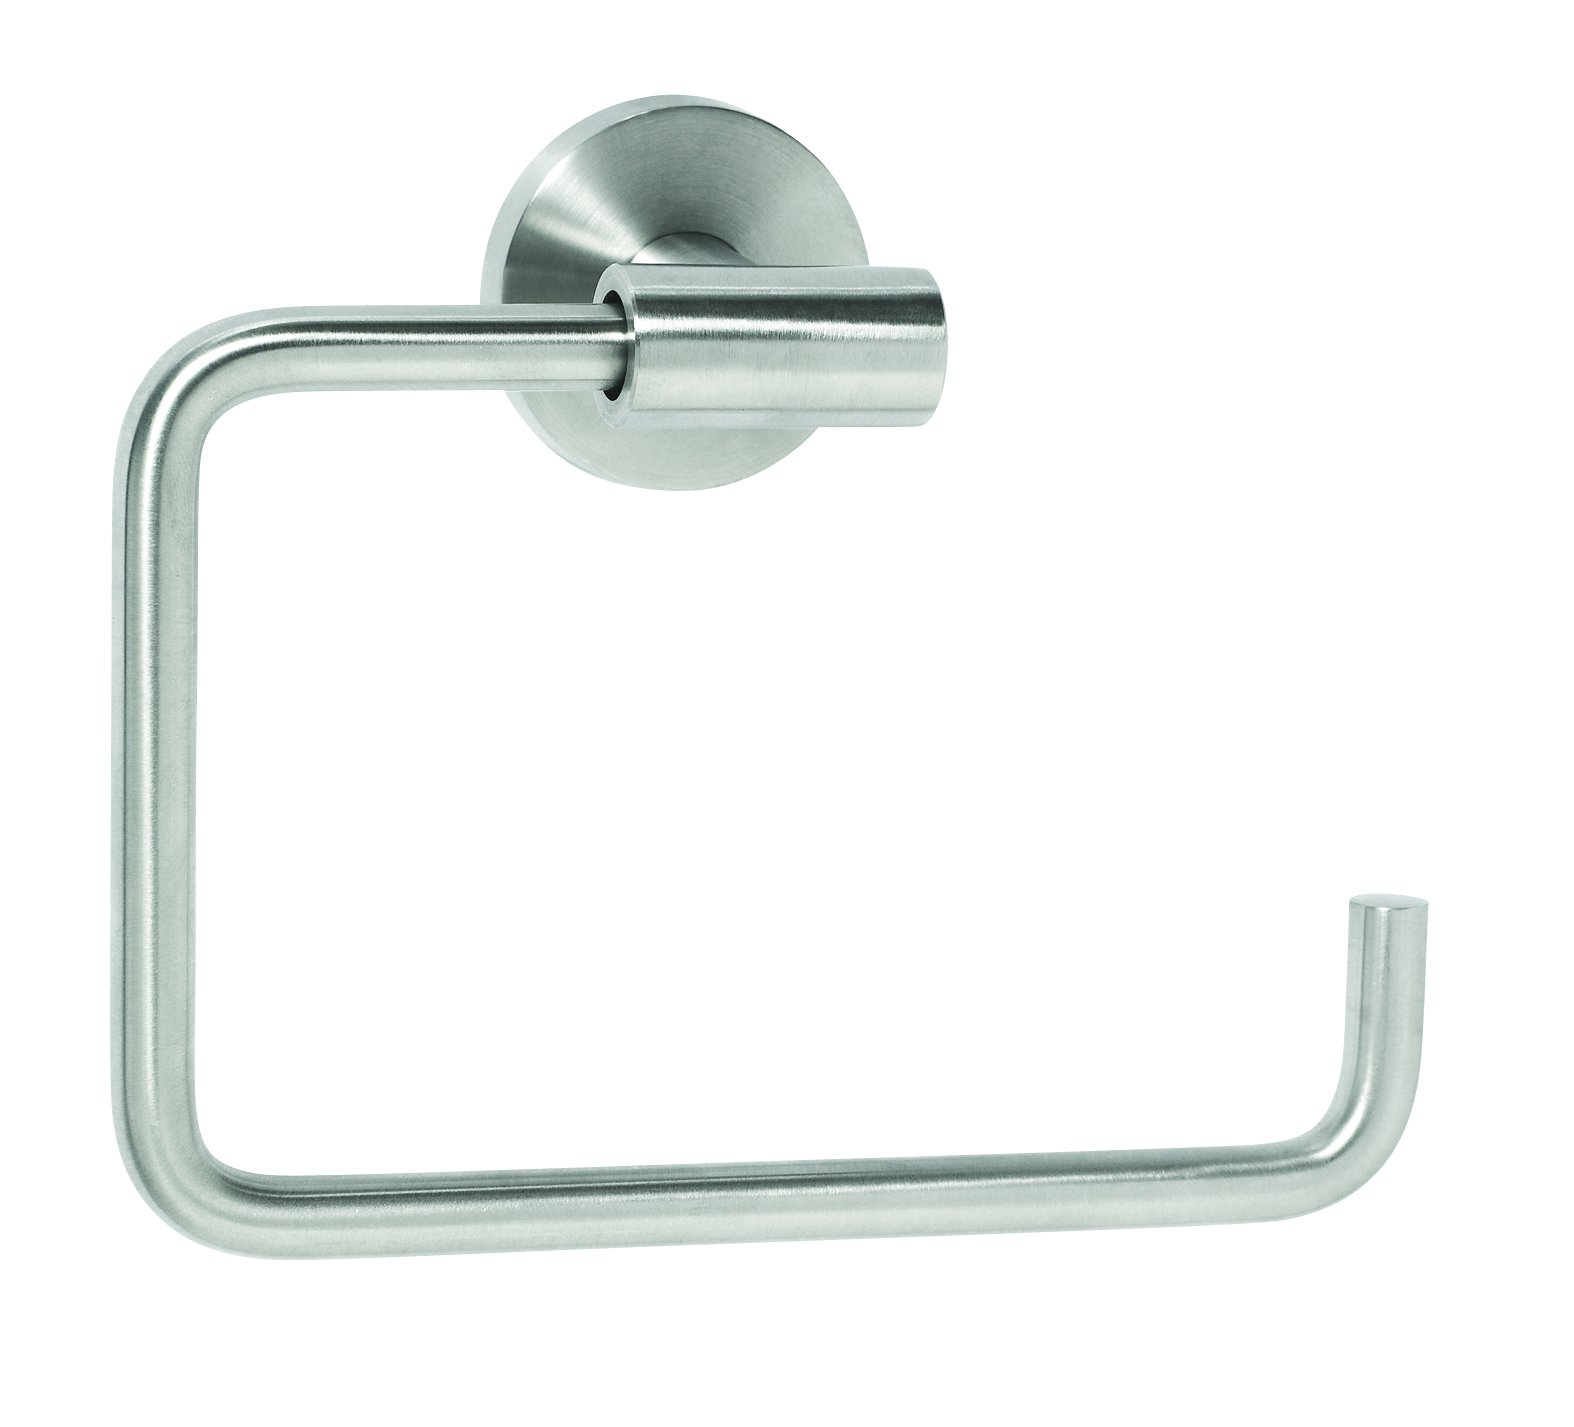 Amerock BH26541-SS Arrondi Collection Towel Ring, Stainless Steel